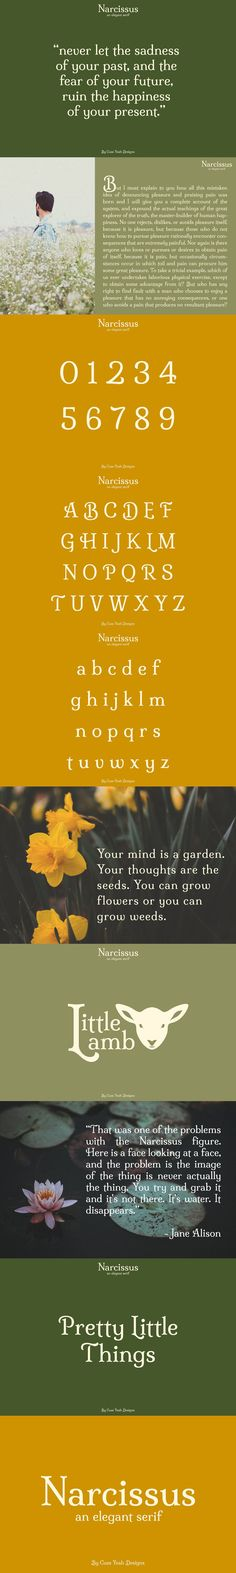 Narcissus is an elegant serif font that can be used for a wide range of projects such as logo designs, branding, wedding invitations, social media posts, and so Upper And Lowercase Letters, Letters And Numbers, Best Serif Fonts, Wedding Invitations, Logo Design, Elegant, Uppercase And Lowercase Letters, Classy, Wedding Invitation Cards